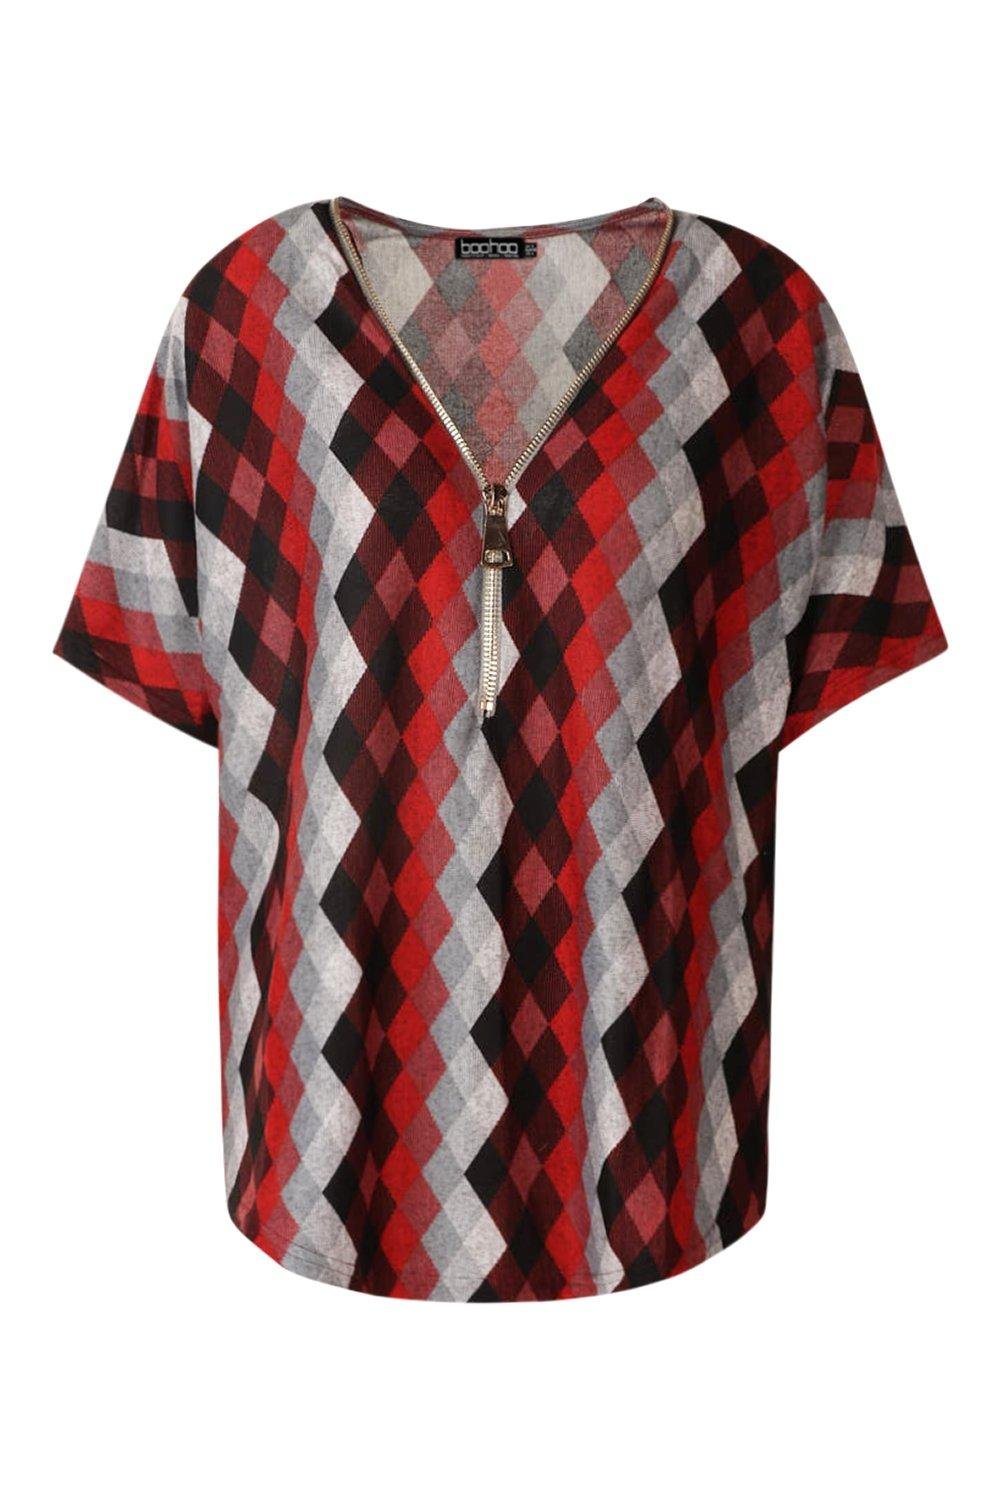 Zip red Print Geo Print Top Zip Geo gxqzWAw5